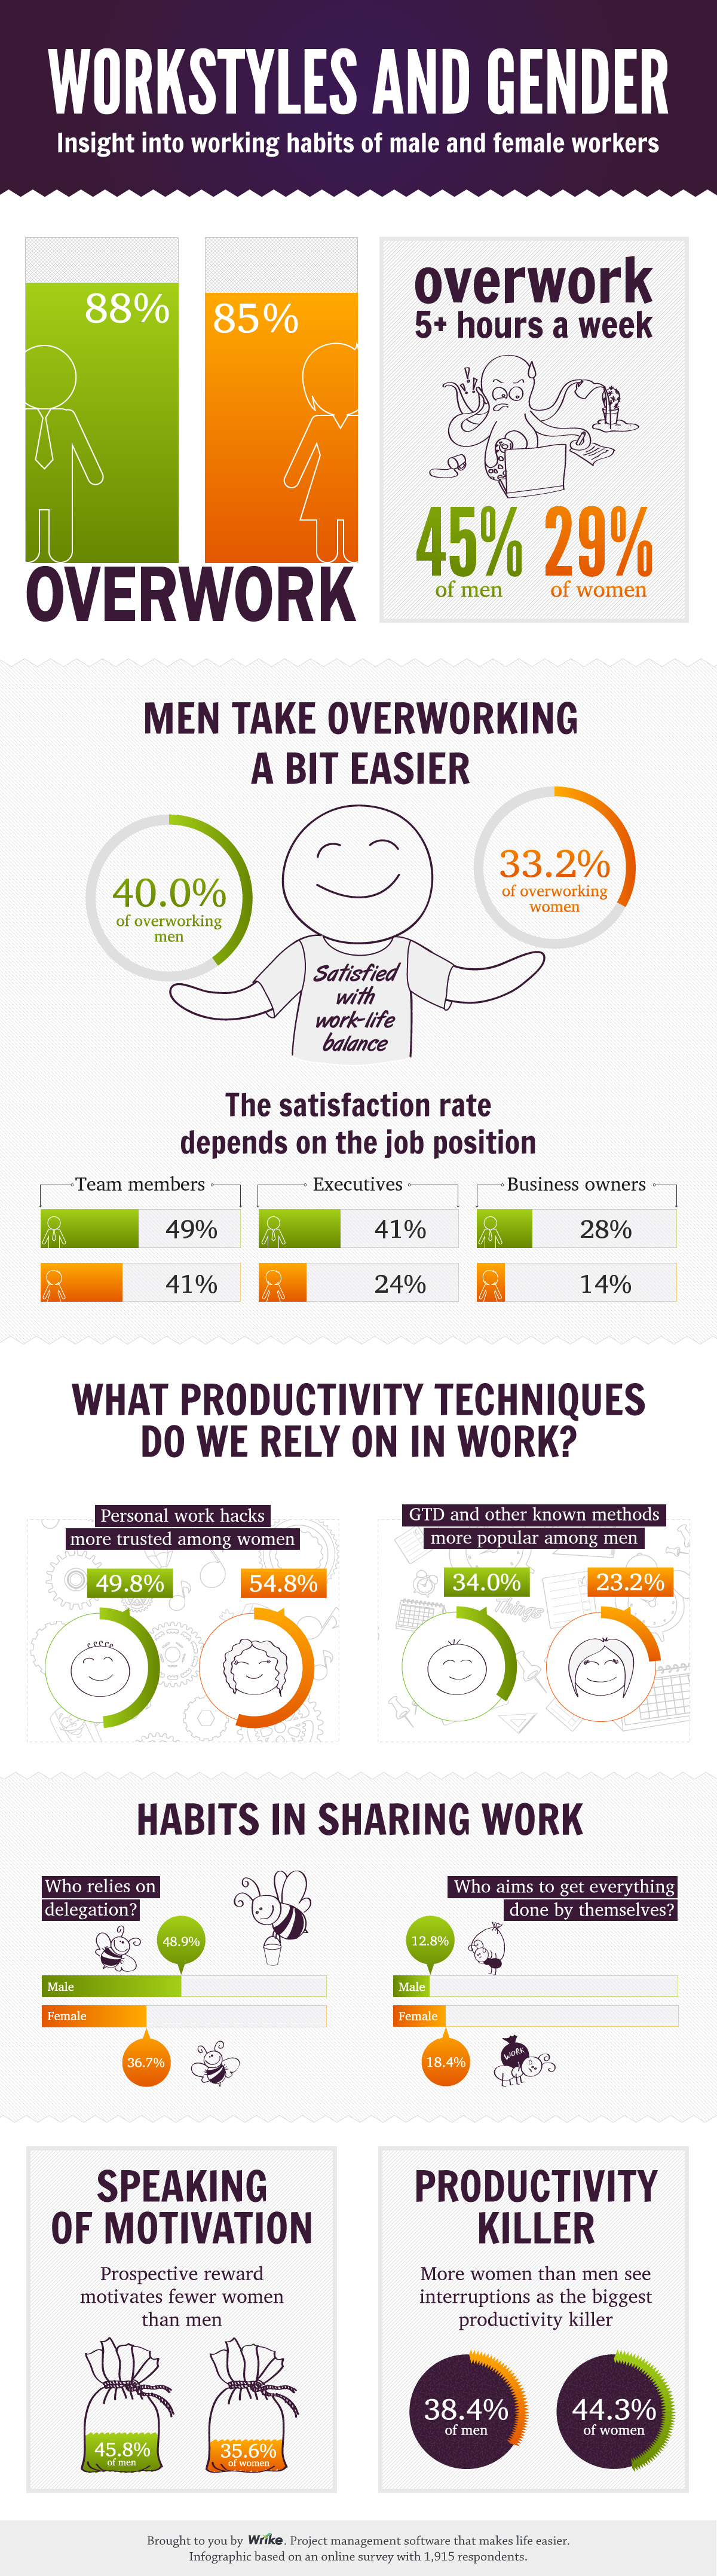 Wrike_infographic_men_and_women_workstyles